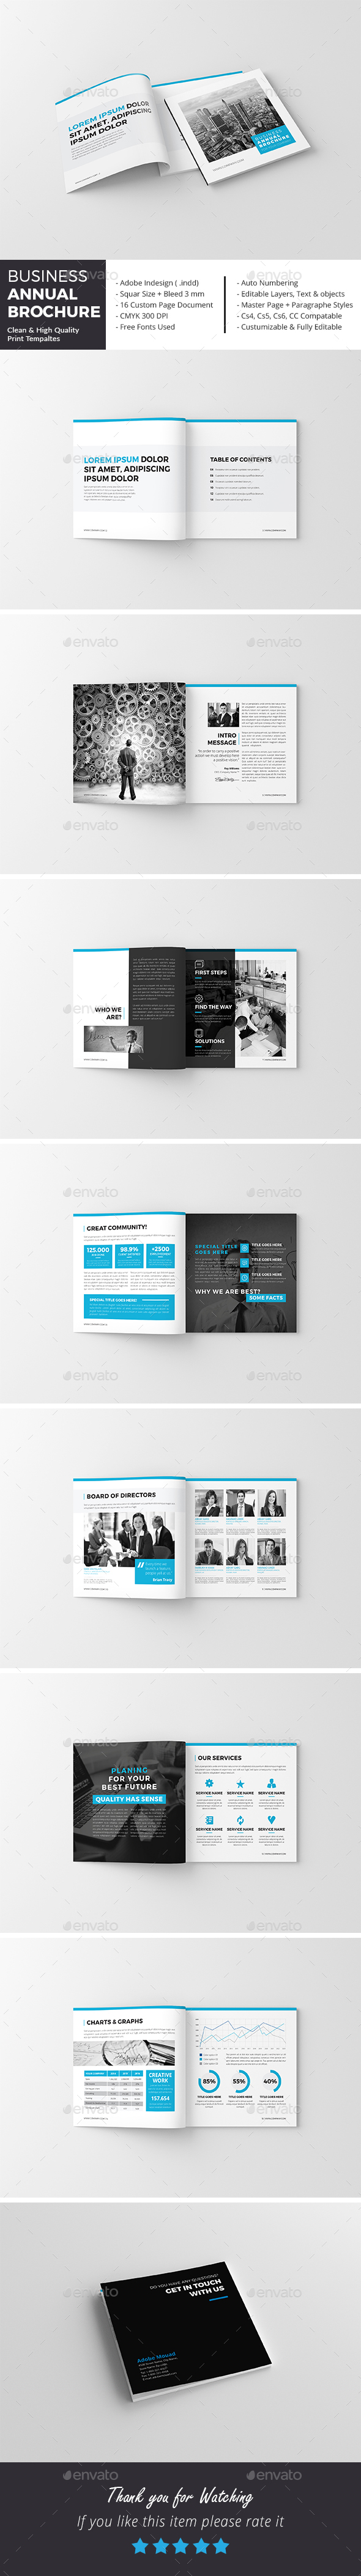 Business Annual Brochure - Corporate Brochures